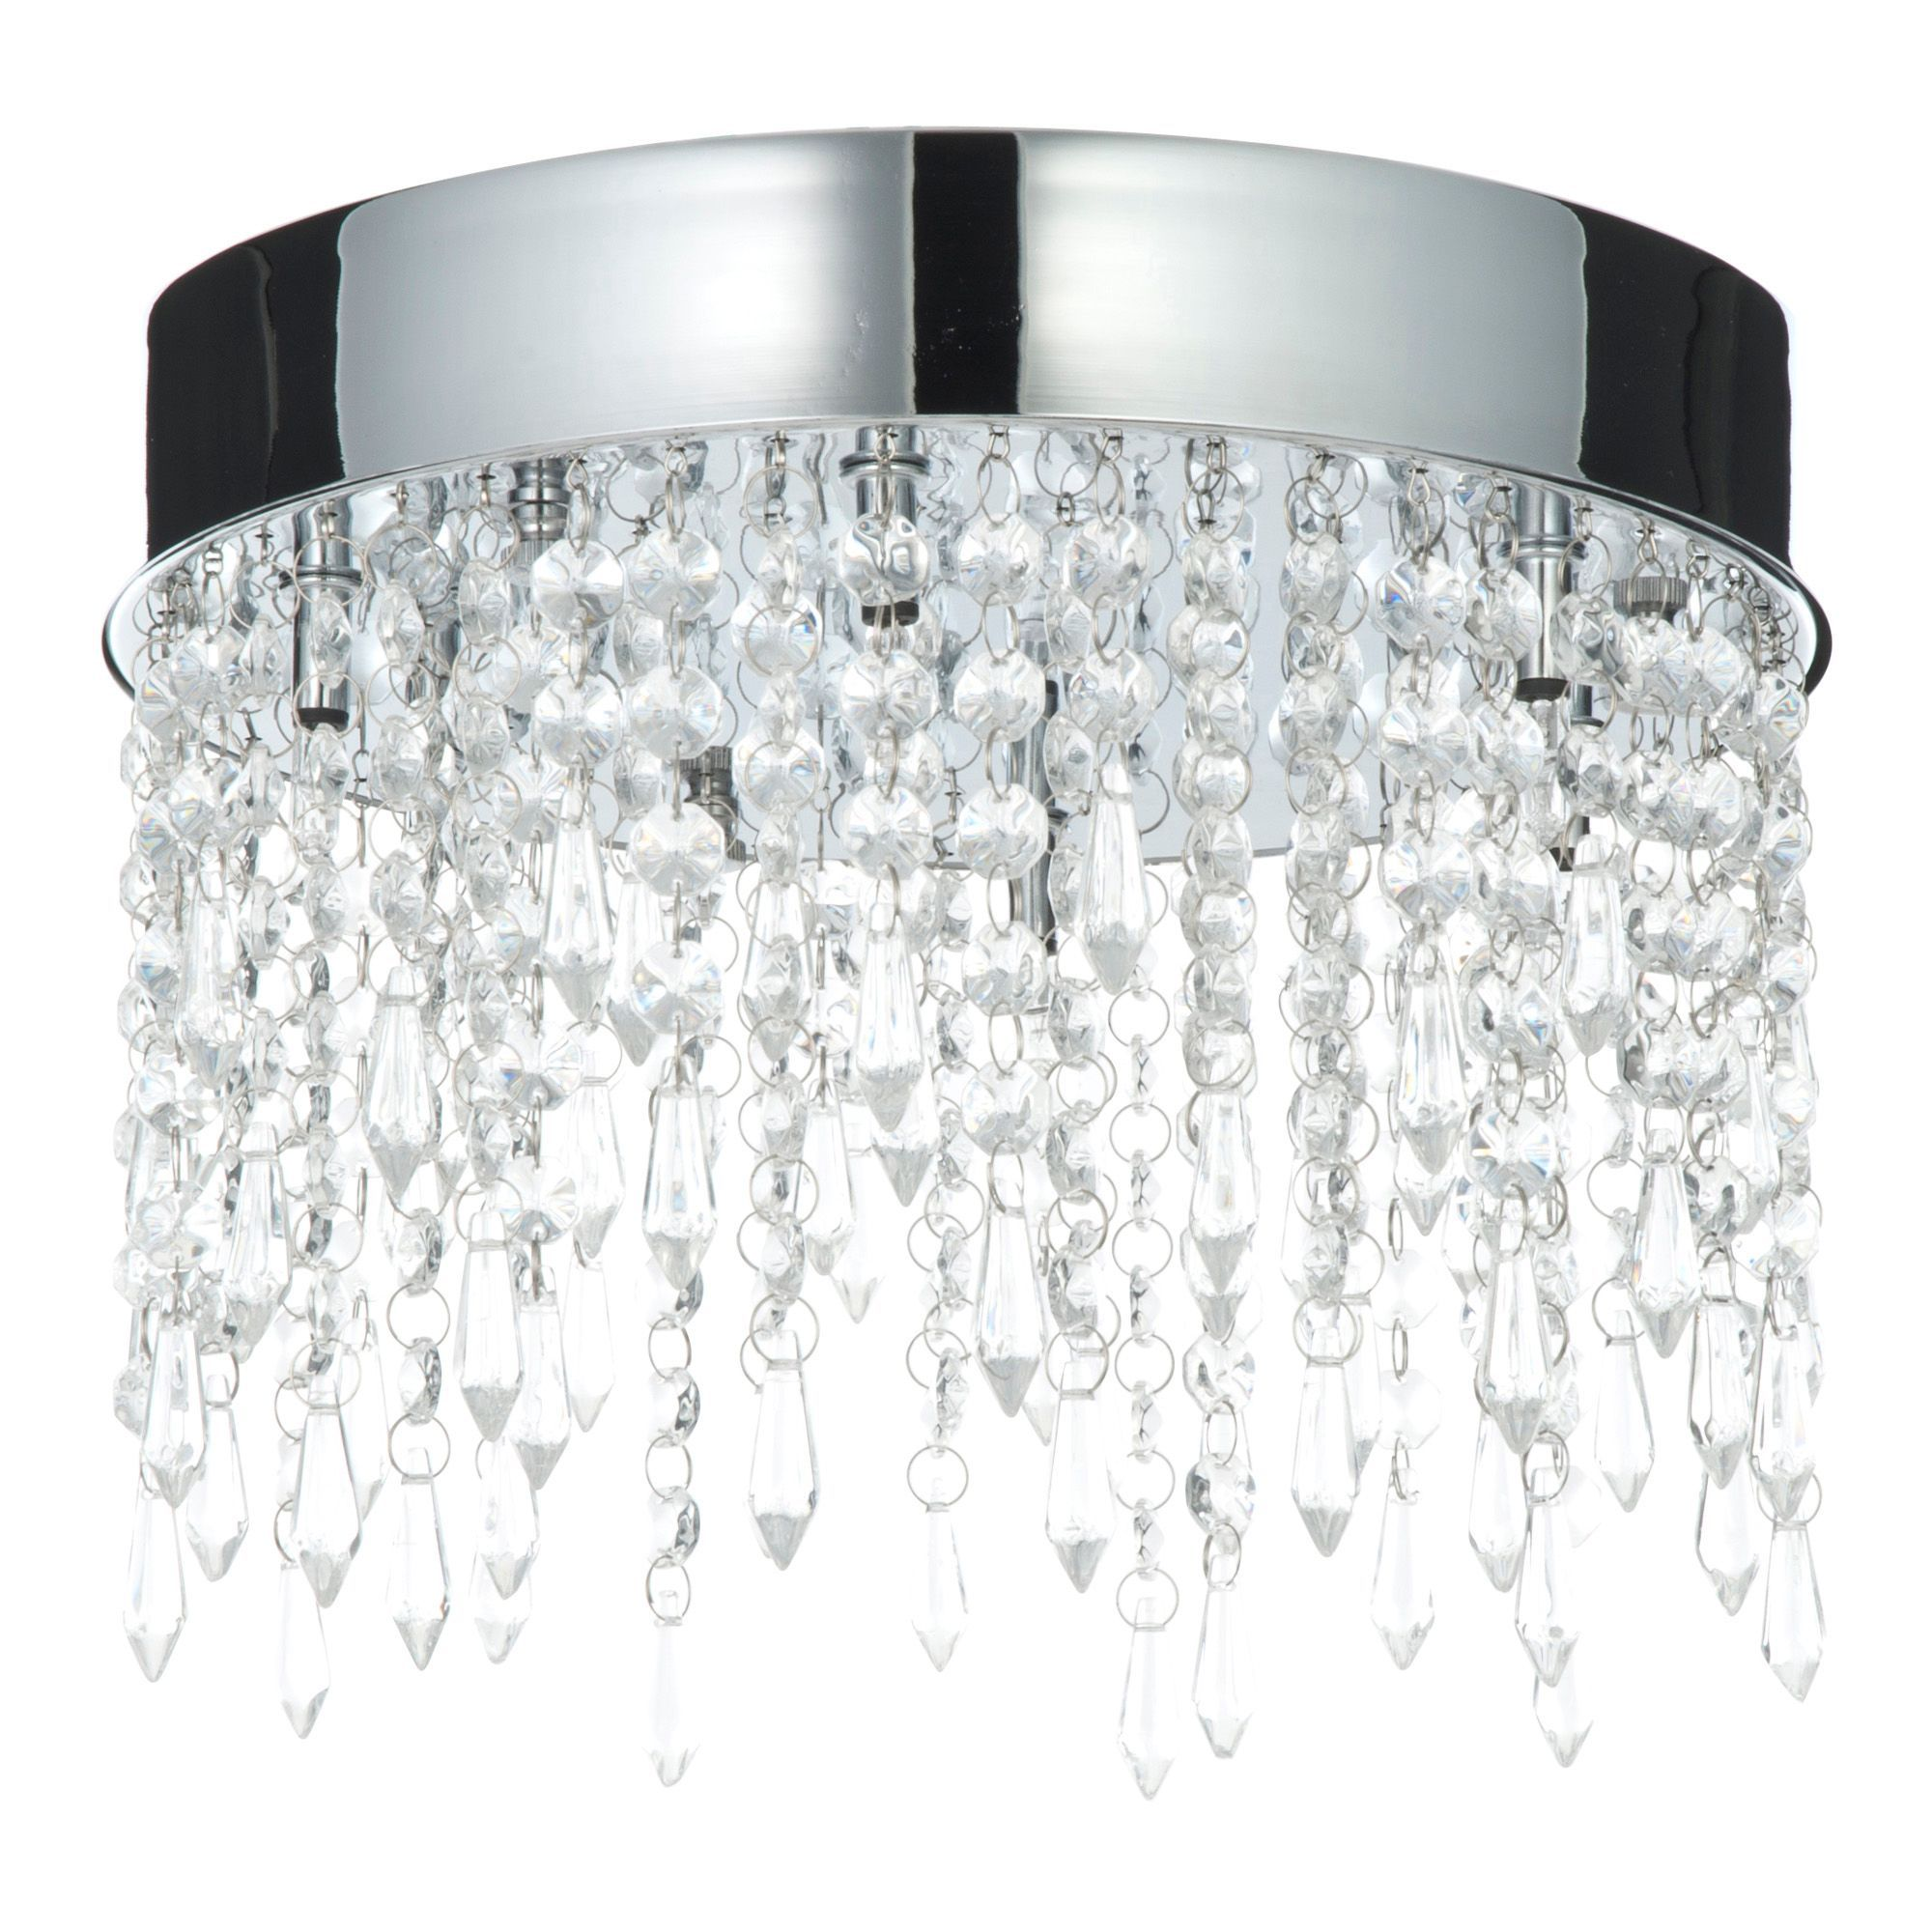 Sabine crystal droplets clear 6 lamp flush ceiling light sabine crystal droplets clear 6 lamp flush ceiling light departments diy at bq mozeypictures Gallery